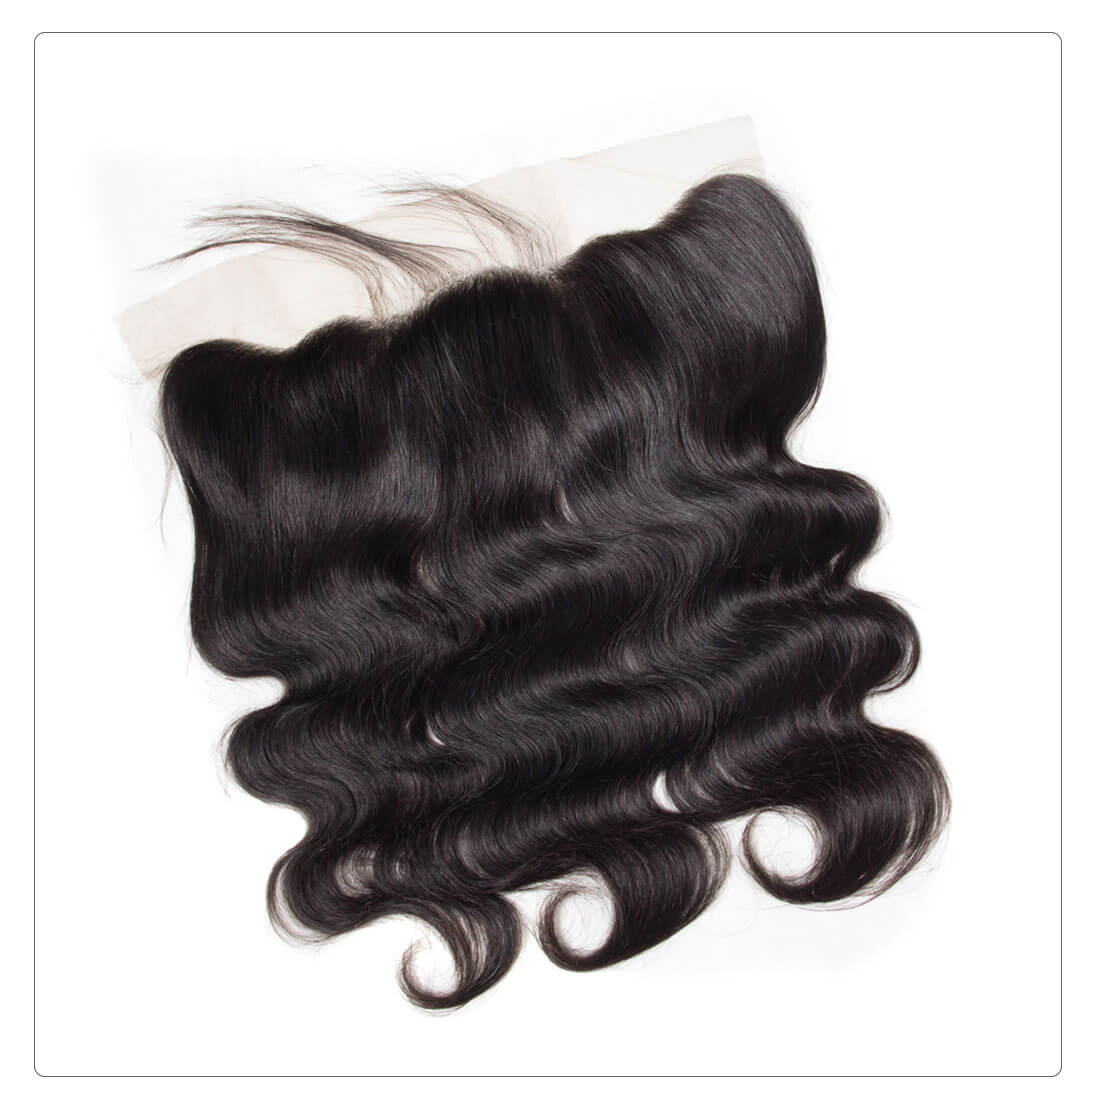 tinashe hair extension body wave frontal